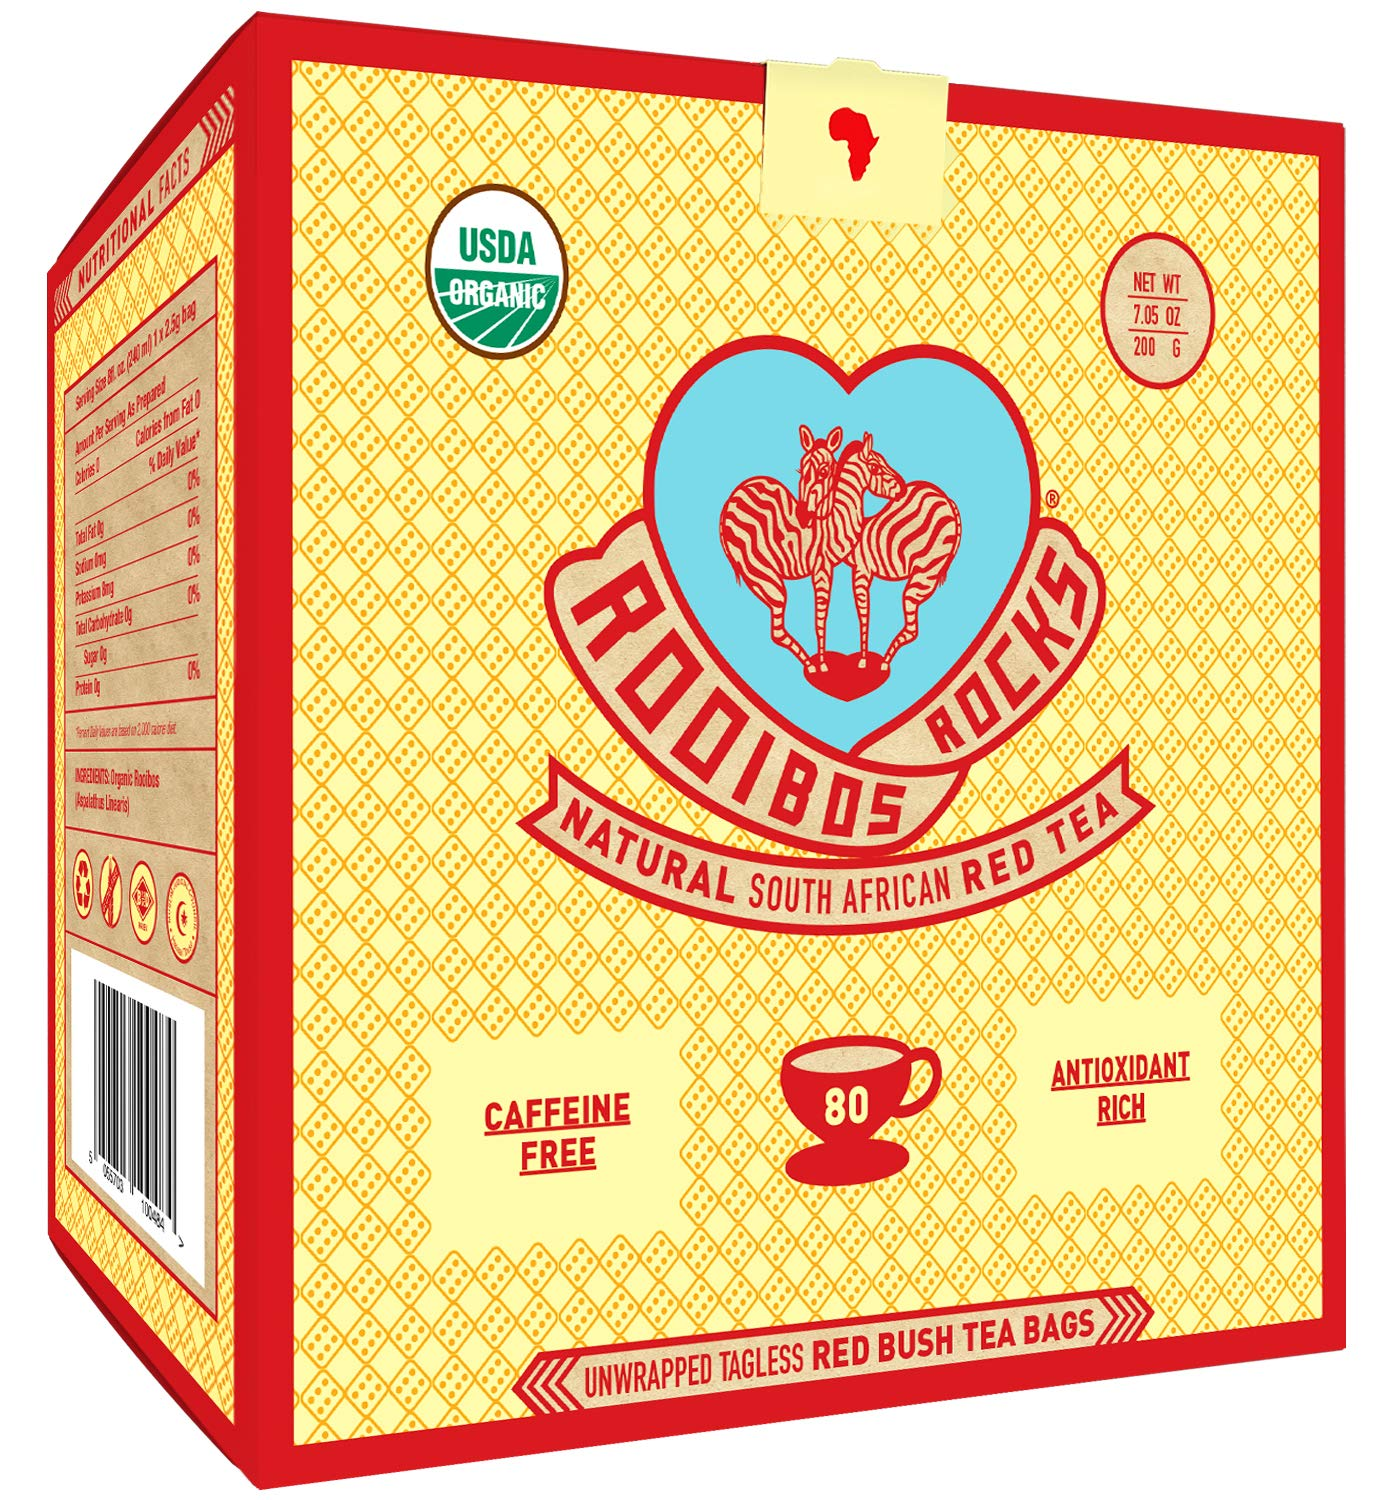 Rooibos Tea Organic Tagless Teabags - 80 Non GMO Naturally Caffeine Free South African Red Bush Herbal Tea Bags By Rooibos Rocks - USDA Organic Rooibos Teas, A Taste of Africa - Feel the Goodness by Rooibos Rocks